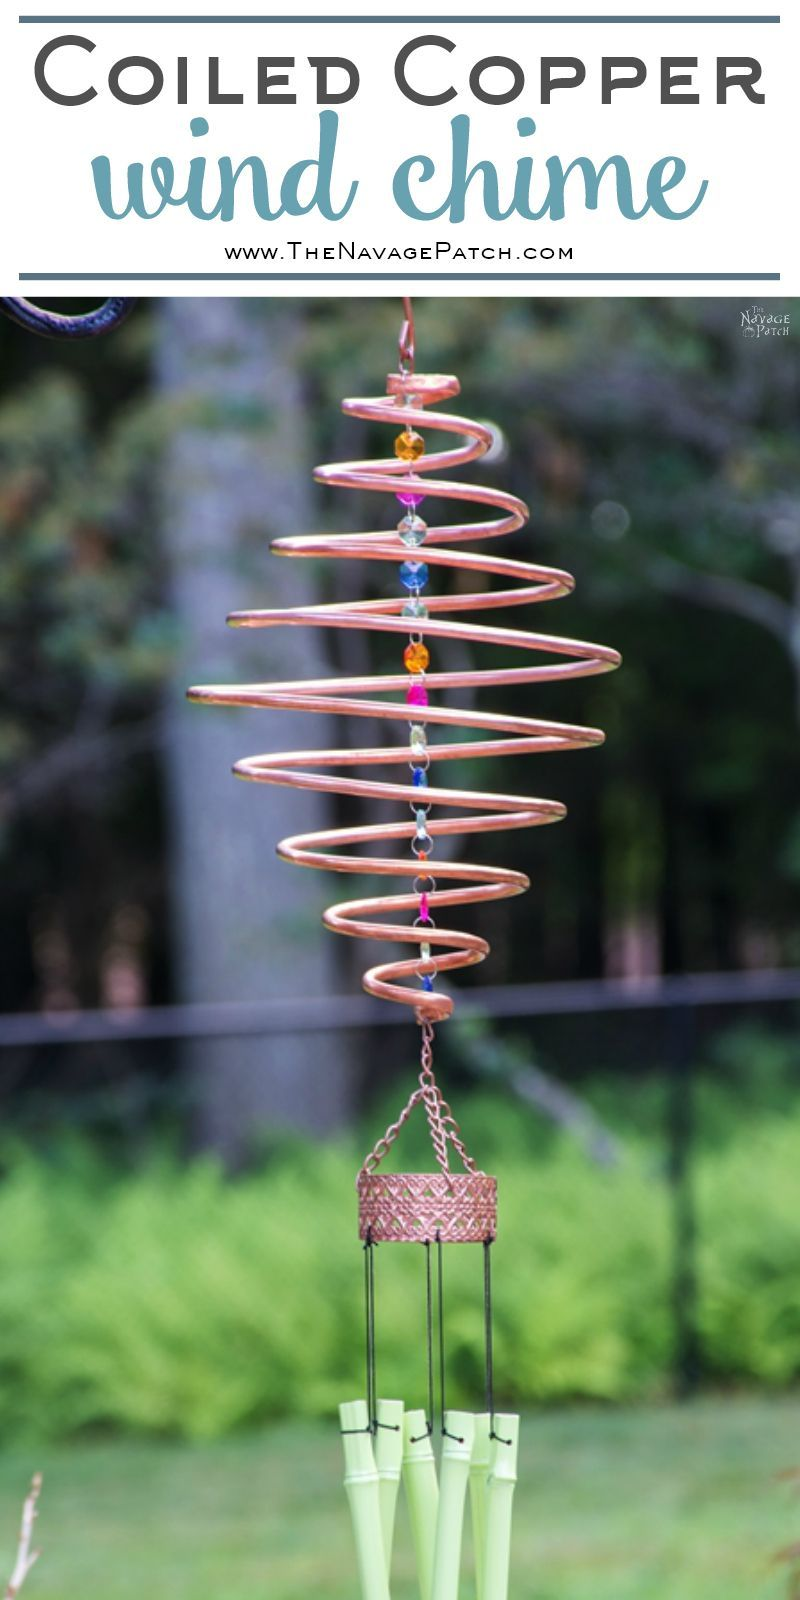 Coiled Copper Wind Chime | DIY Wind Chime | How Make A Spiral Wind Chime  From